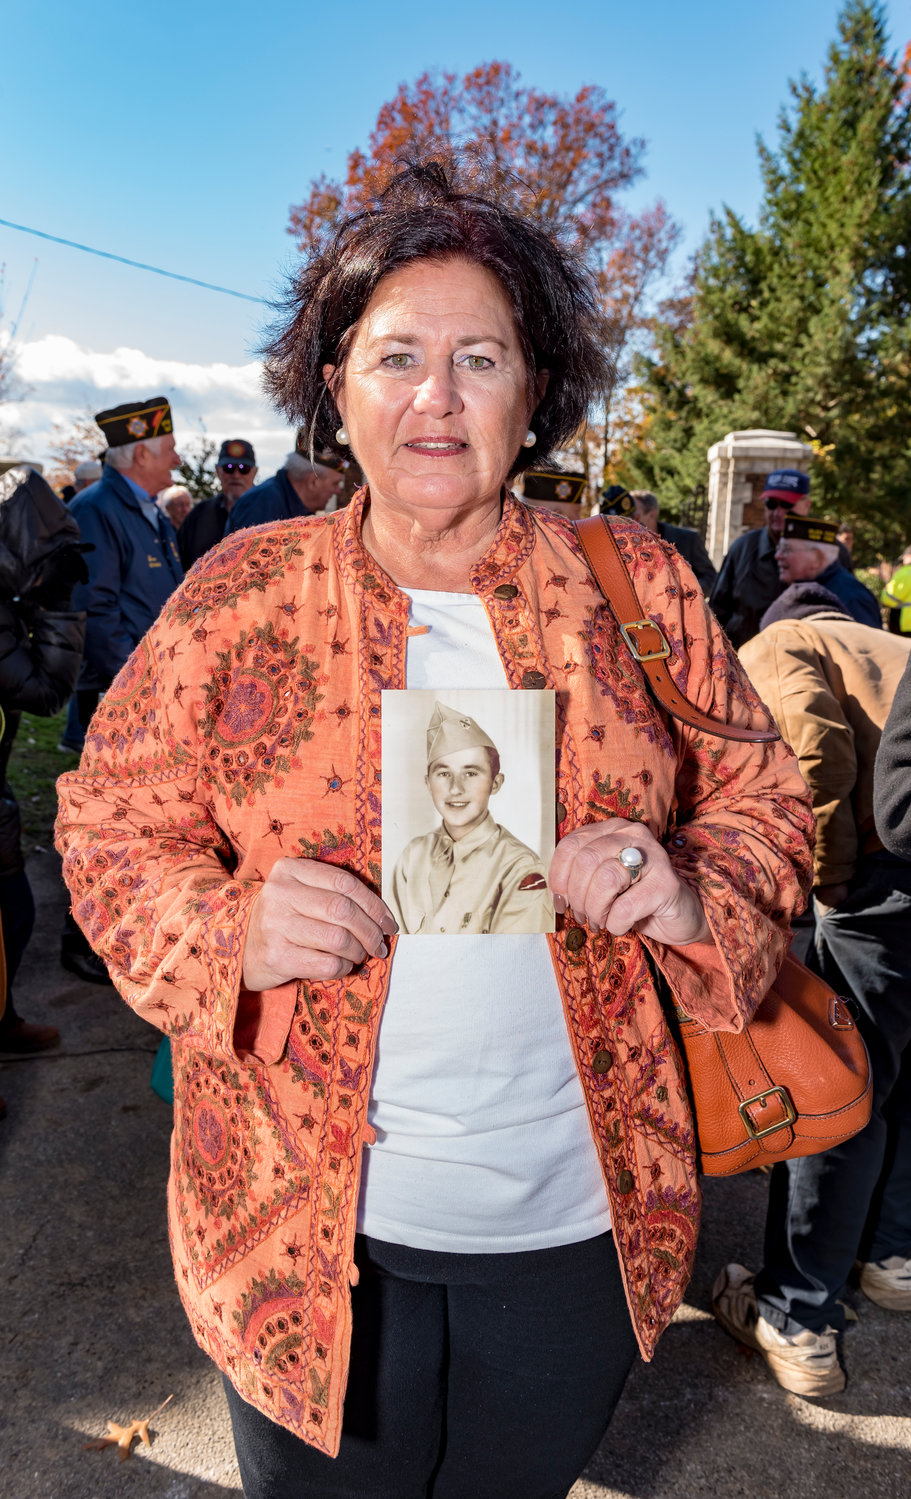 Joan Trubish brought a photo of her father, Adam Trubish.